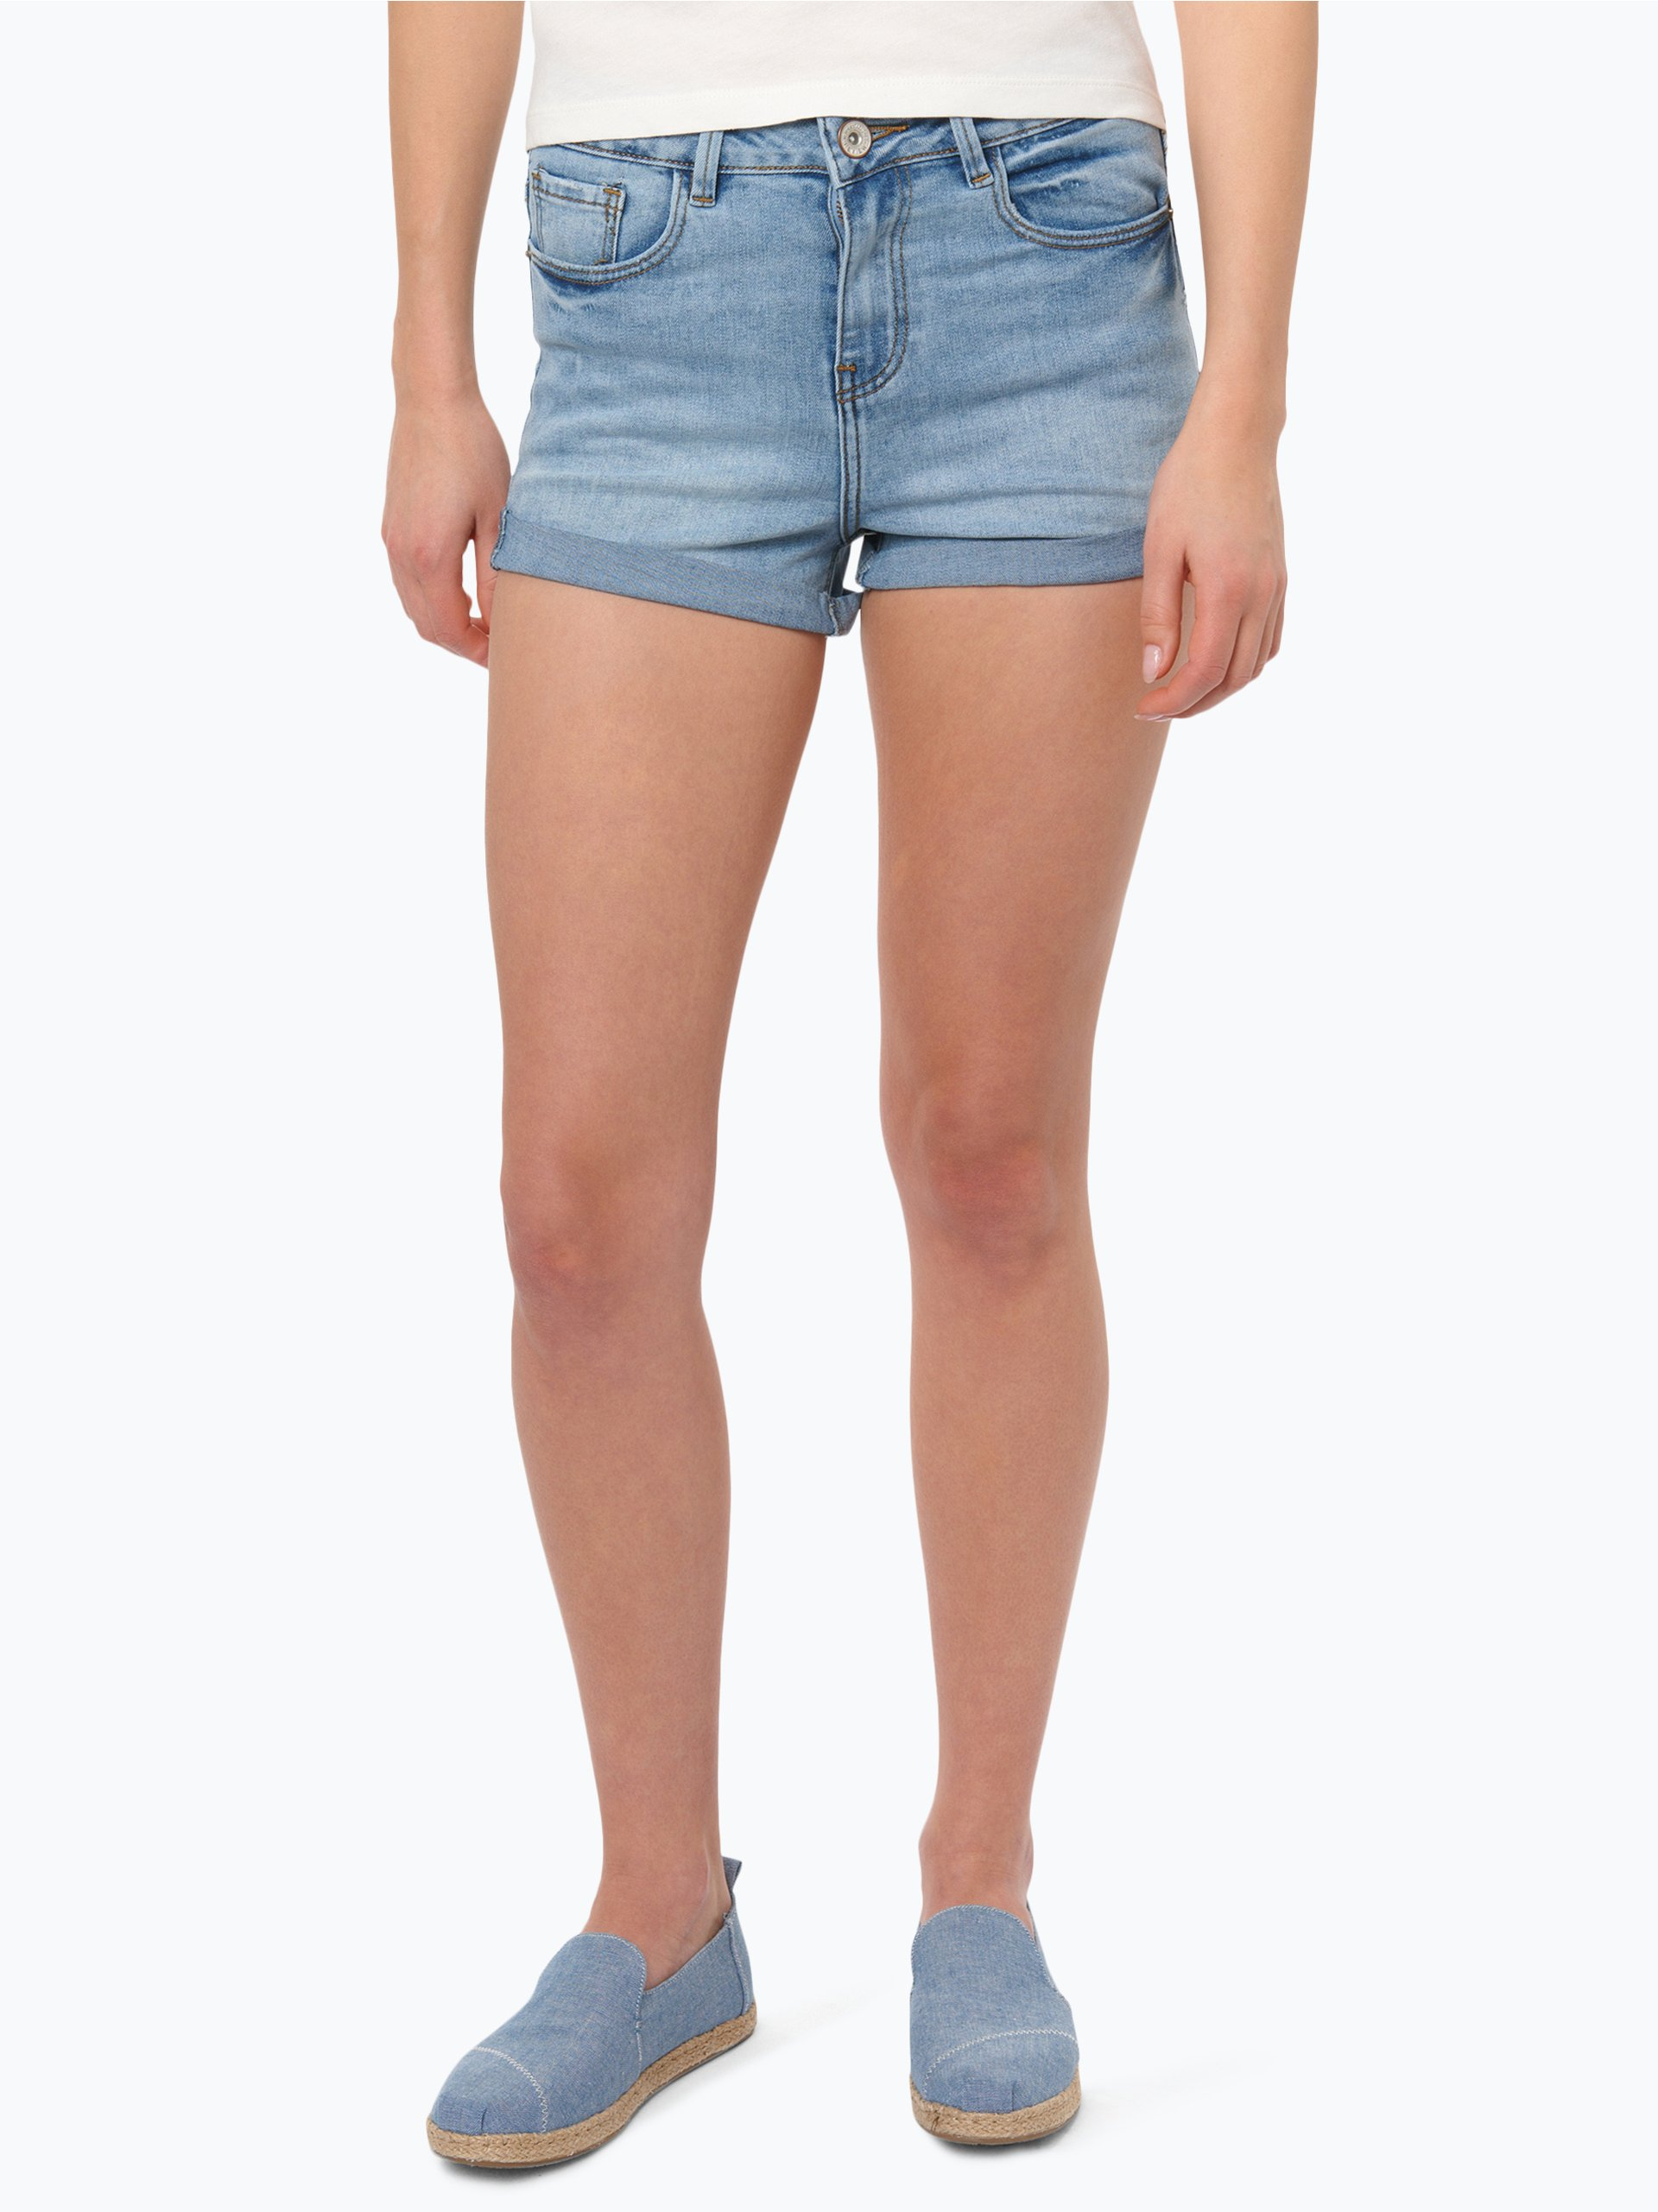 review damen jeans shorts blau uni online kaufen vangraaf com. Black Bedroom Furniture Sets. Home Design Ideas